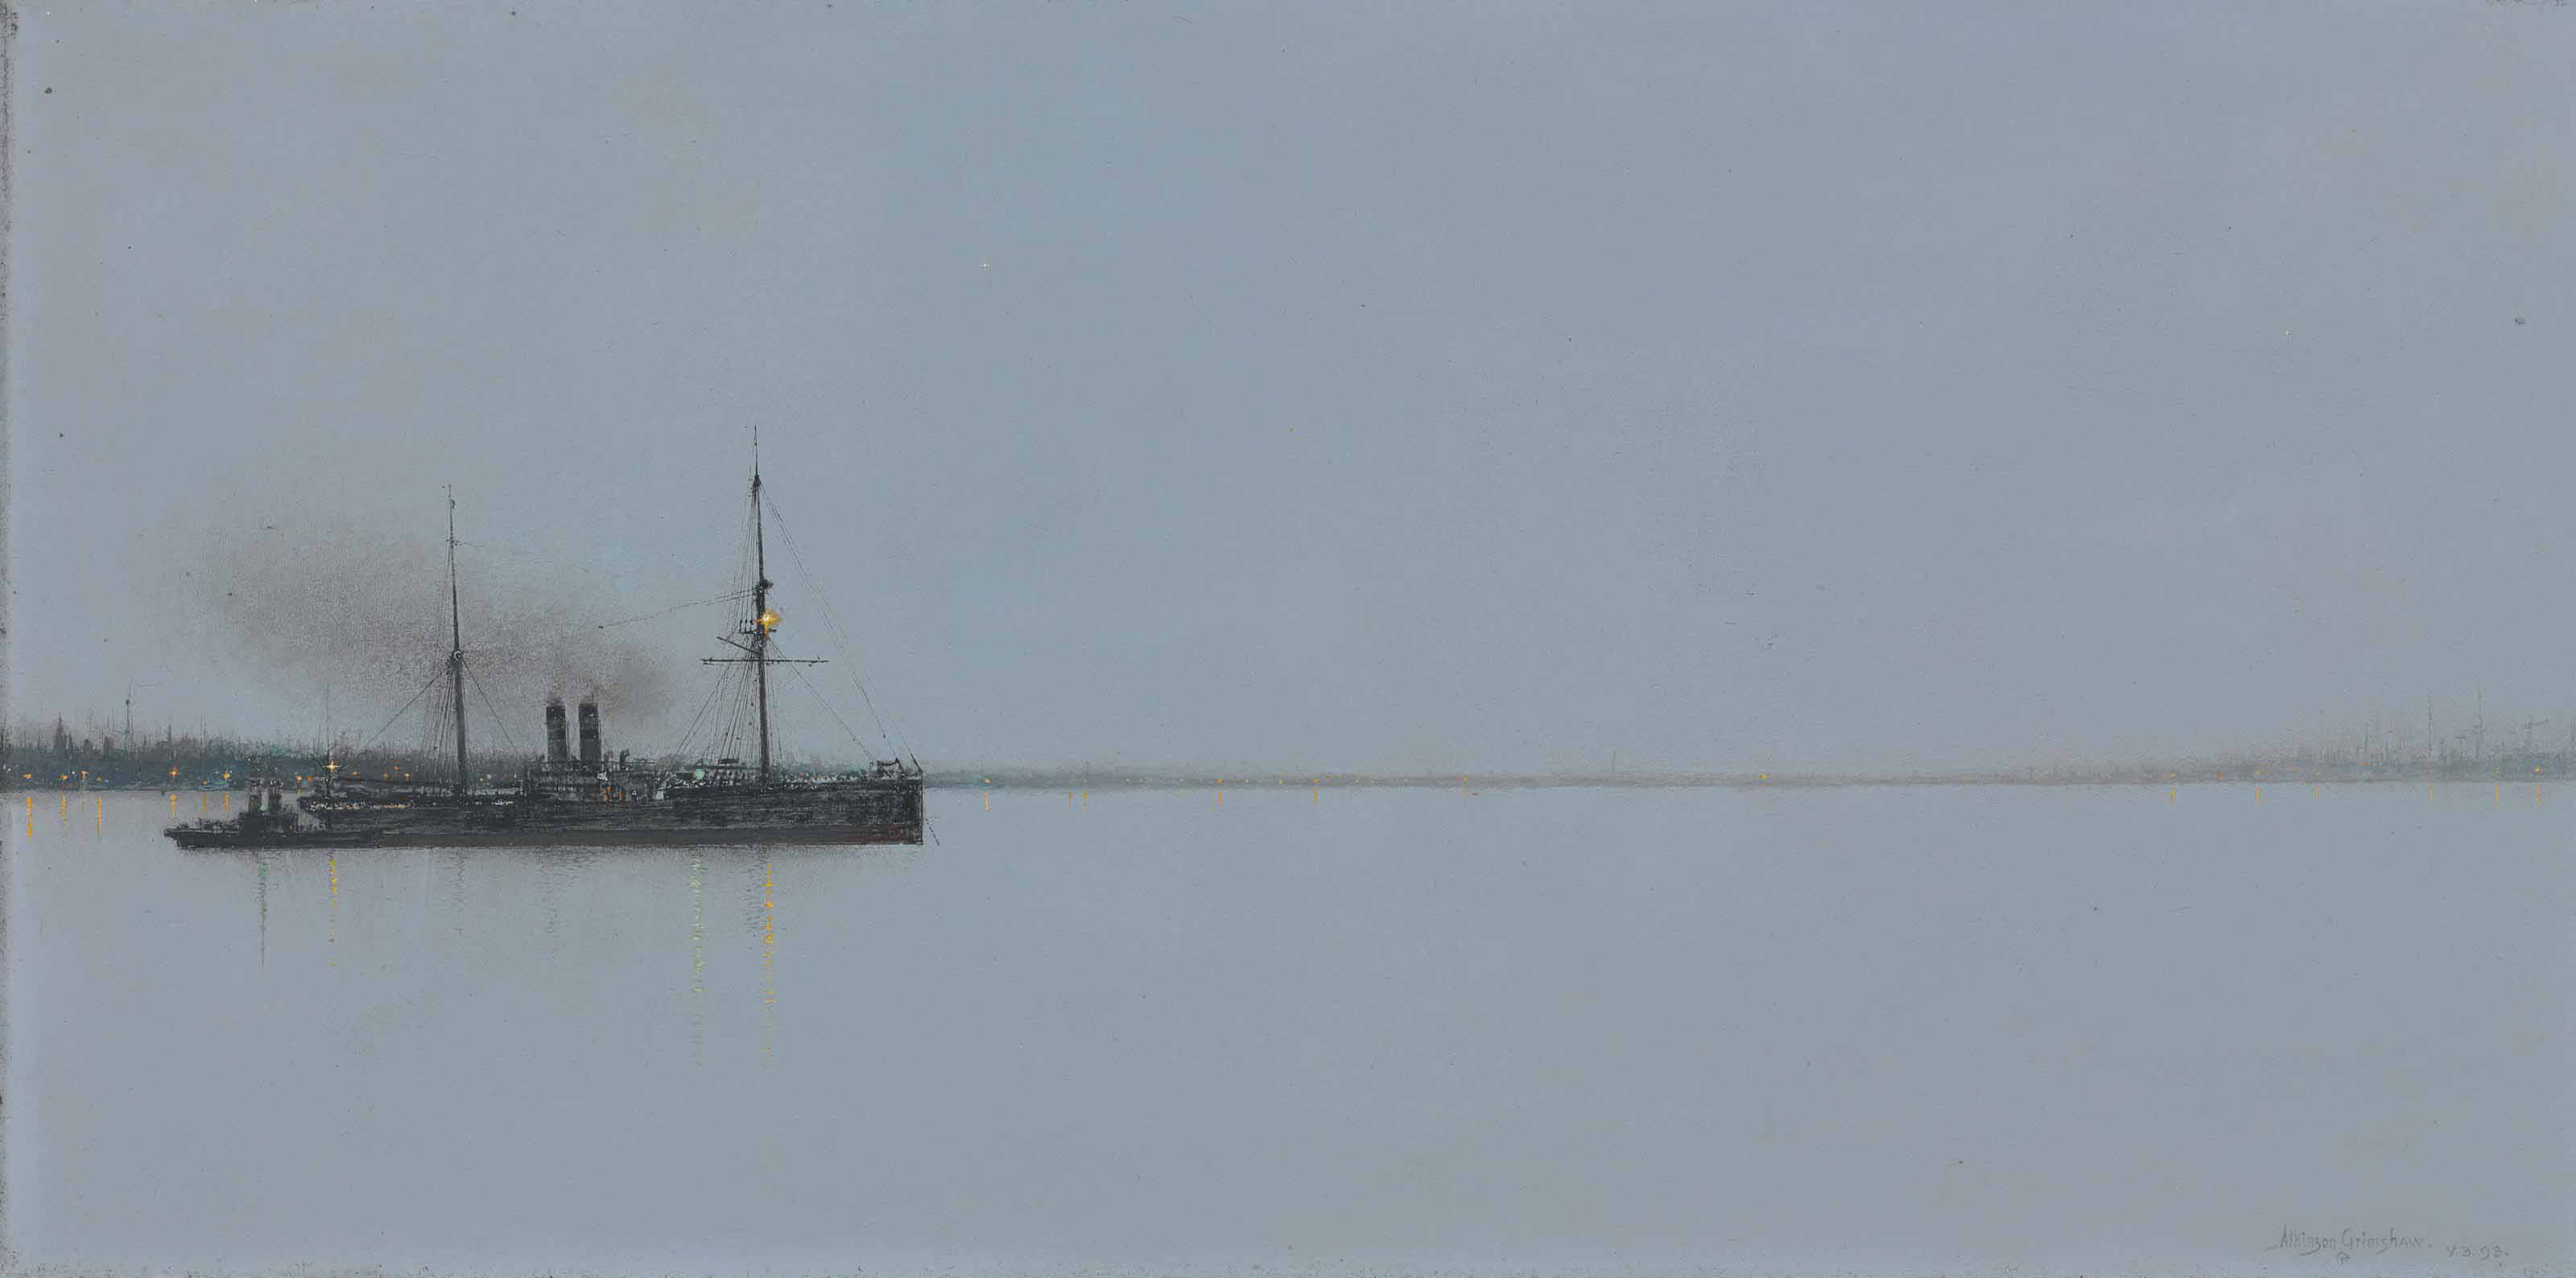 Dead calm - on the Mersey